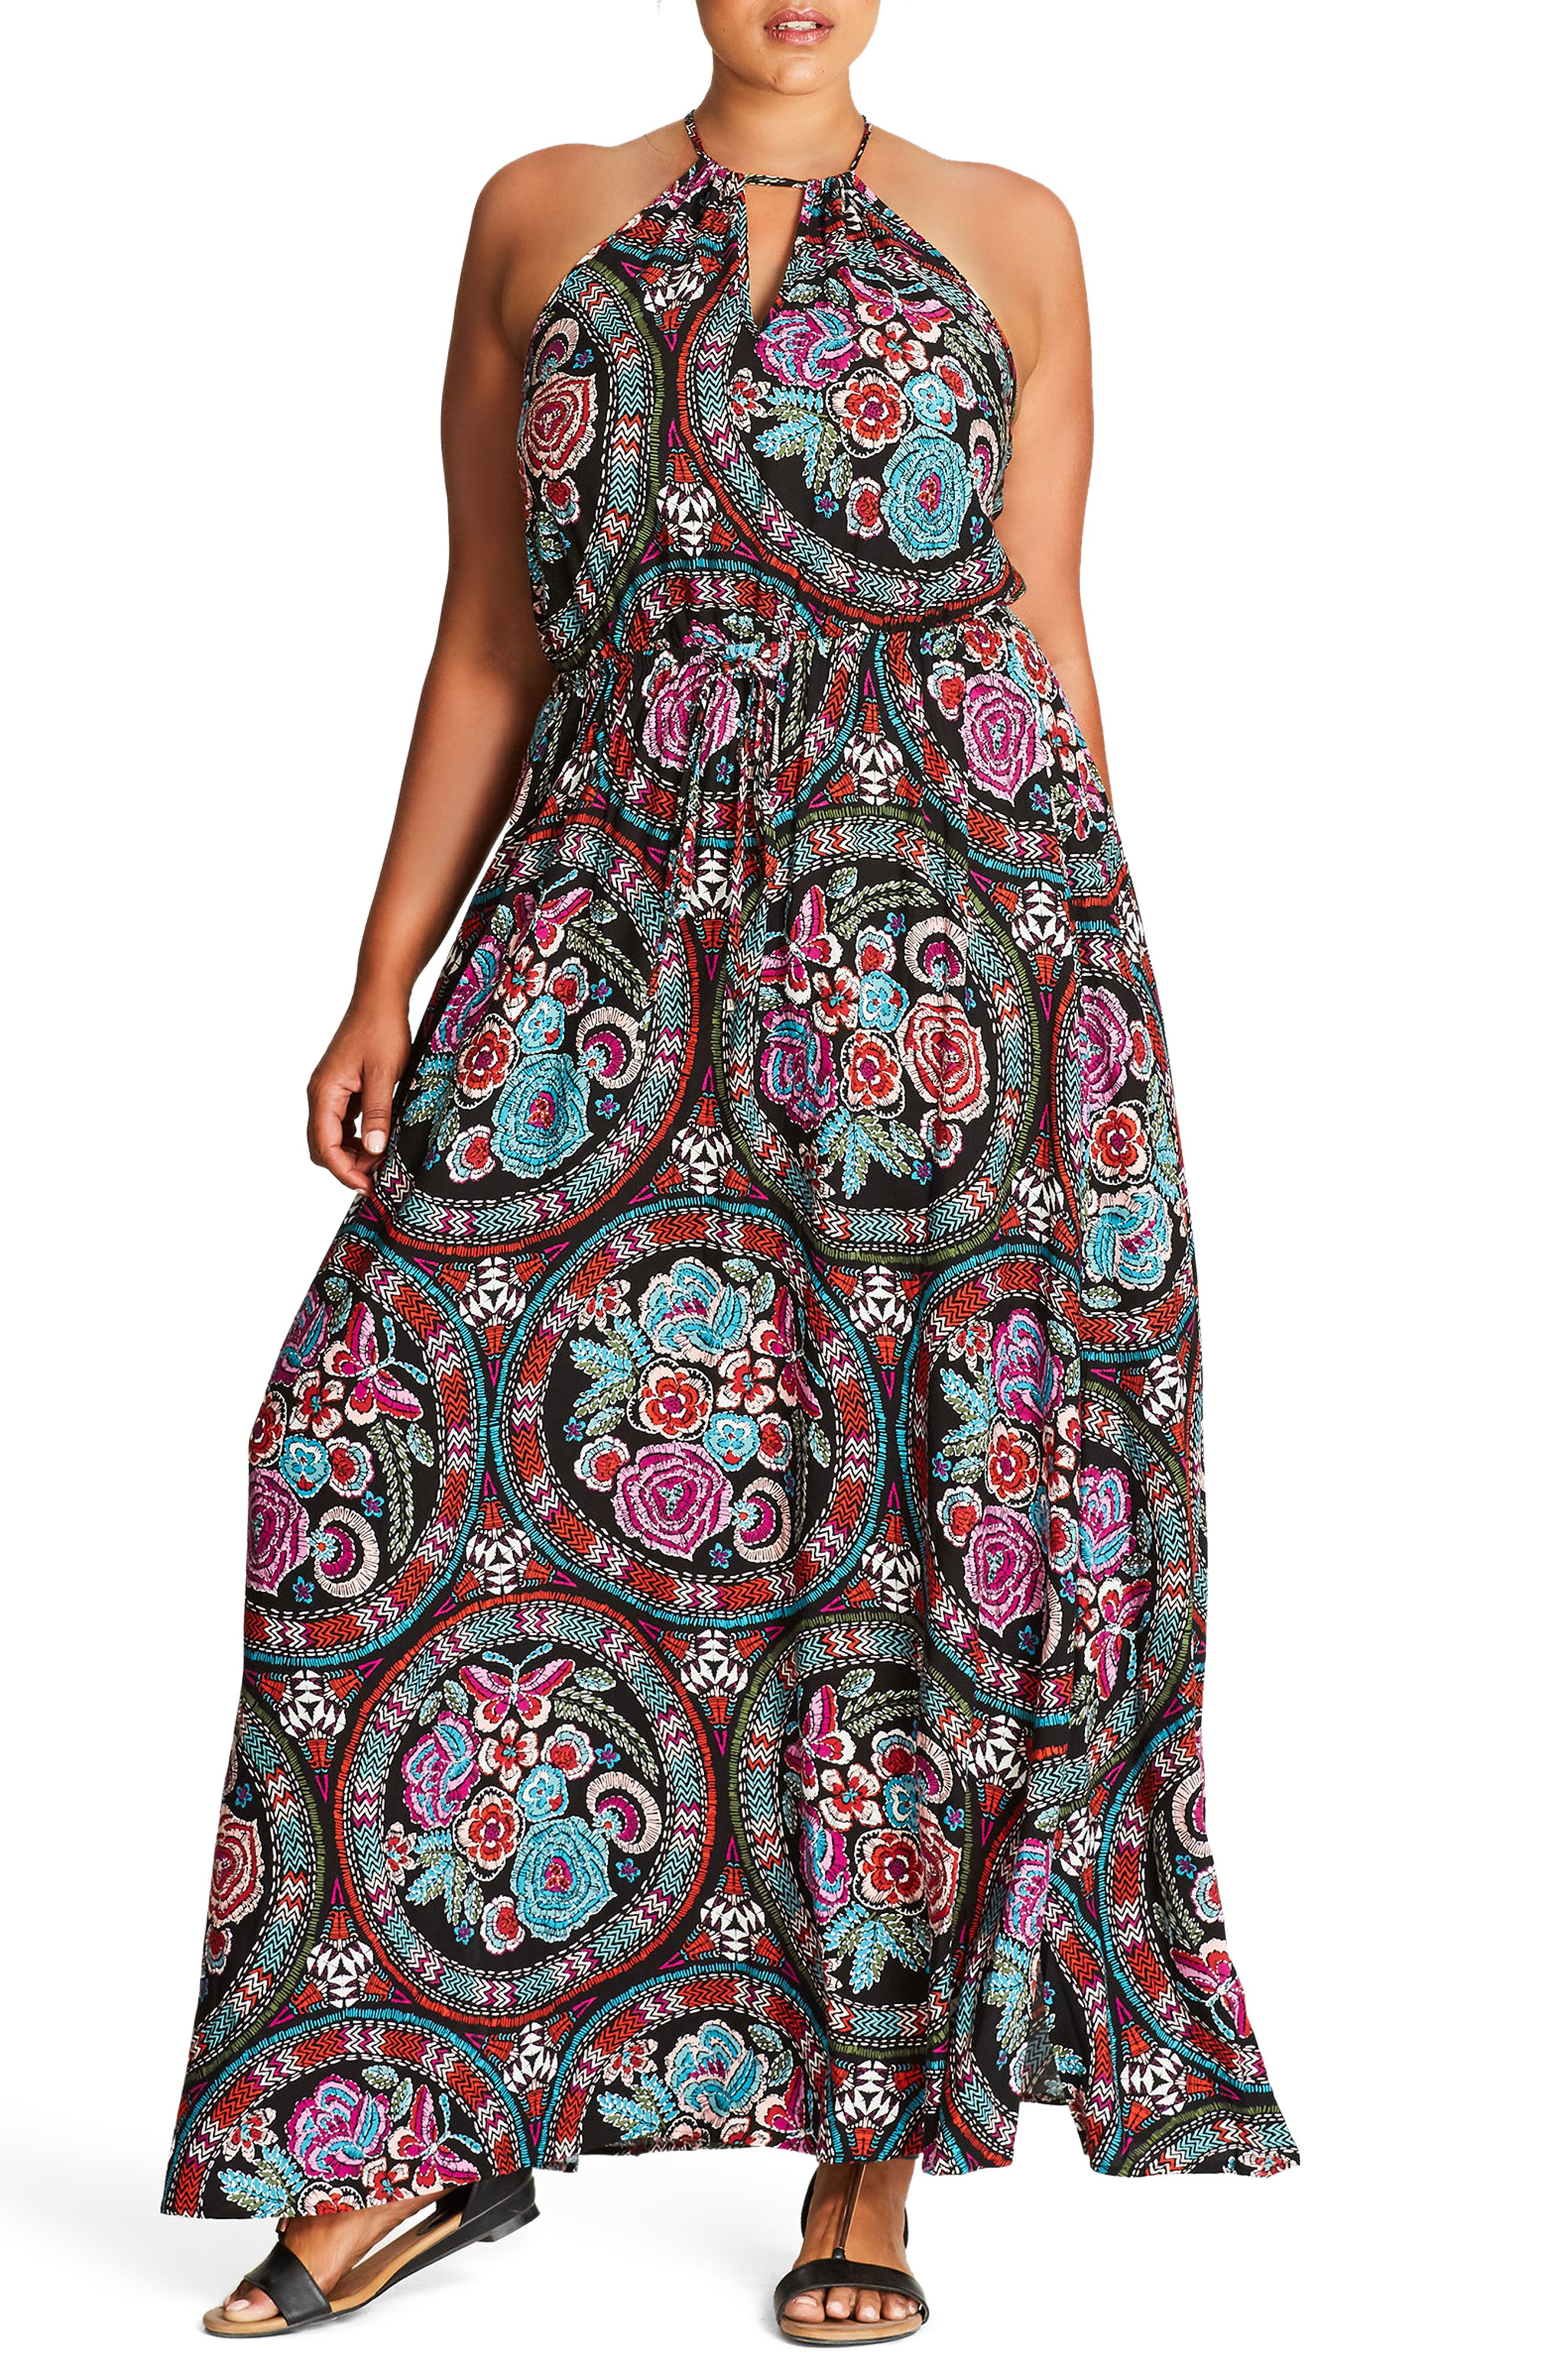 2408dbf26062 womens bohemian dress | Nordstrom